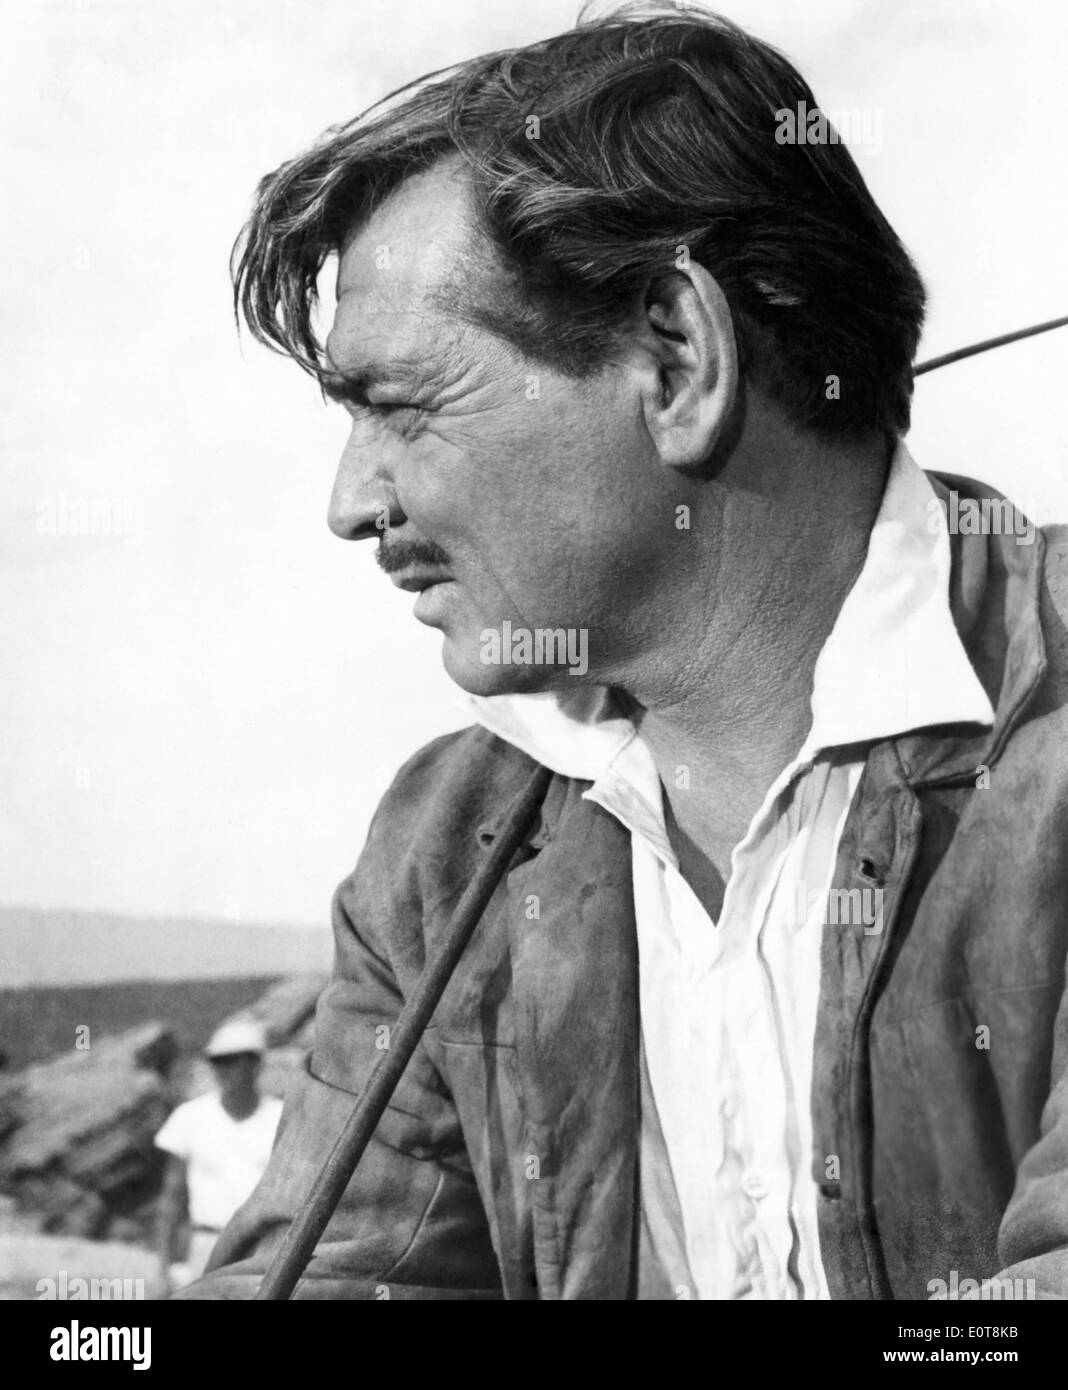 Clark Gable, on-set of the Film, The Misfits, 1961 - Stock Image